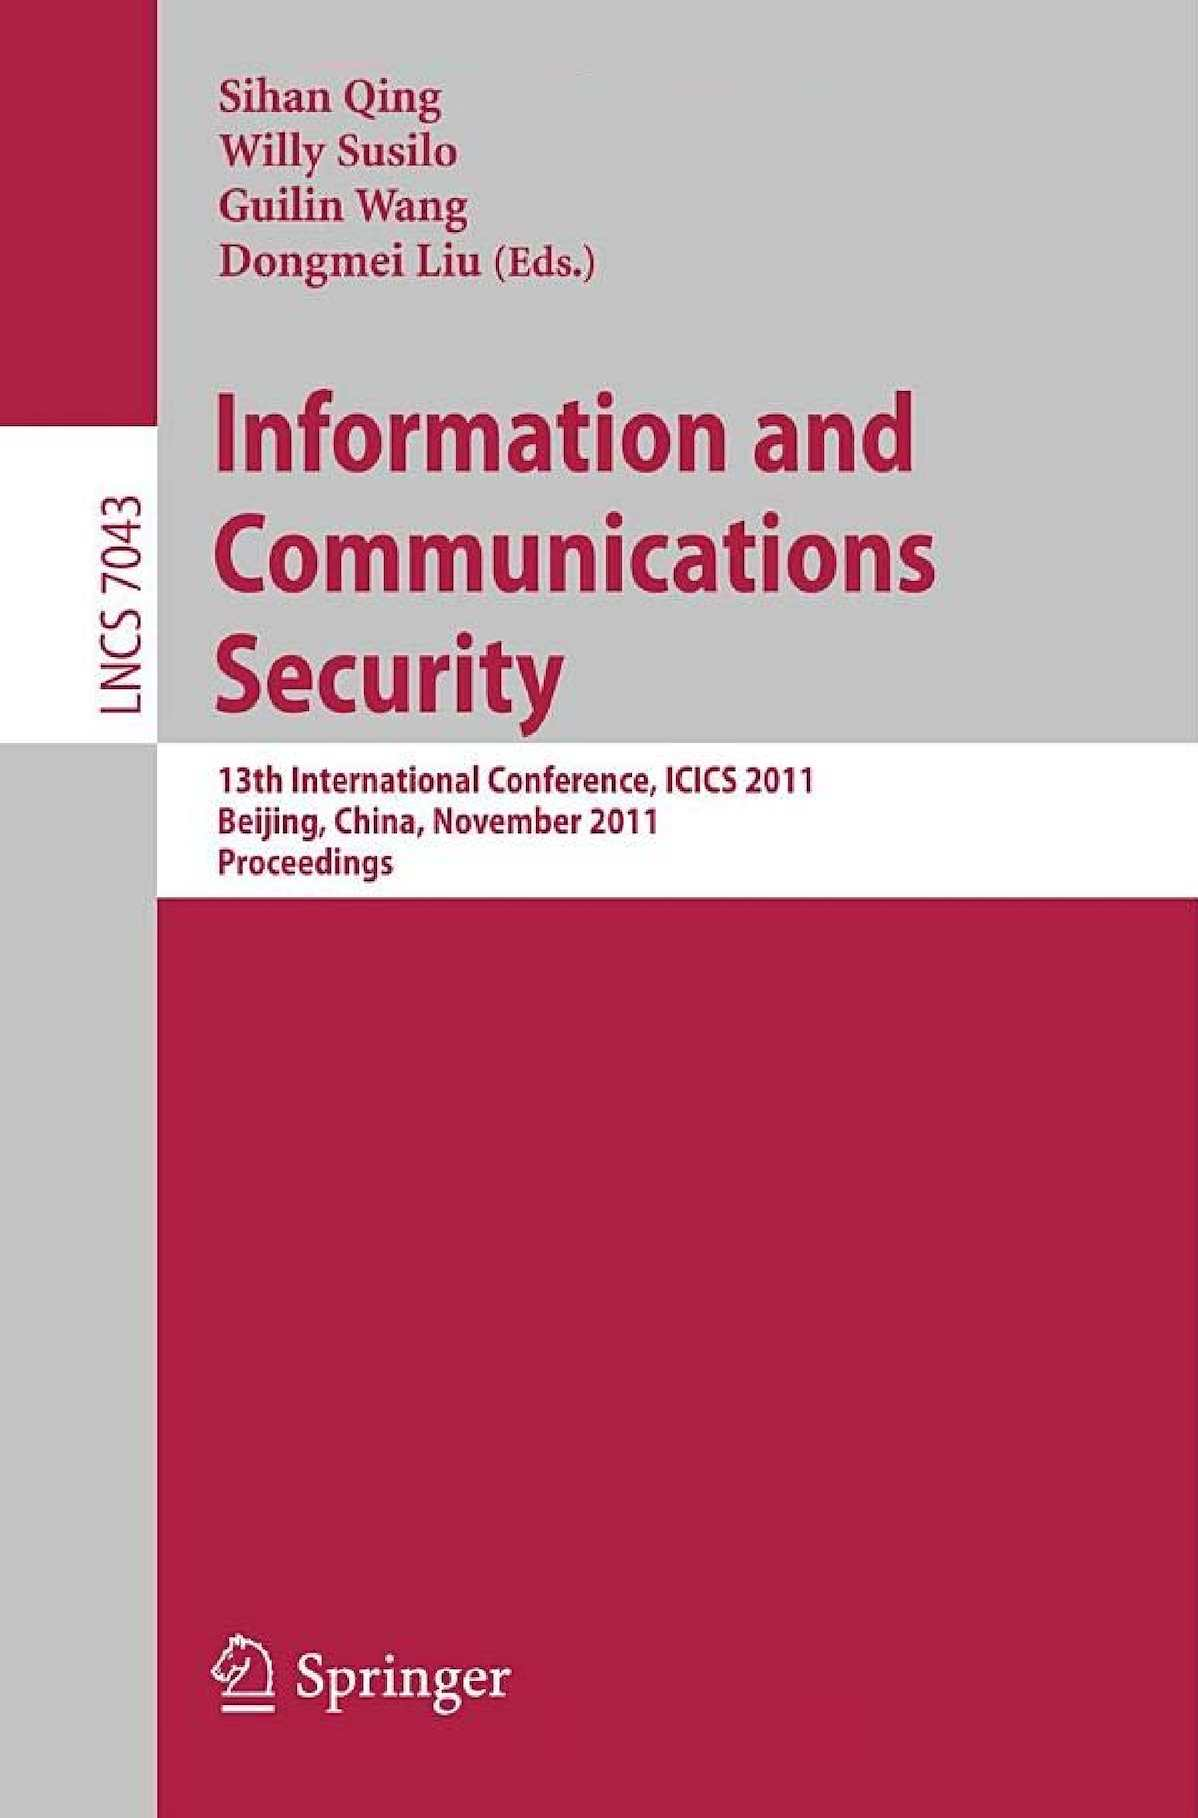 Calamo Information And Communication Security Alphanet Experiment 2 Half Adder